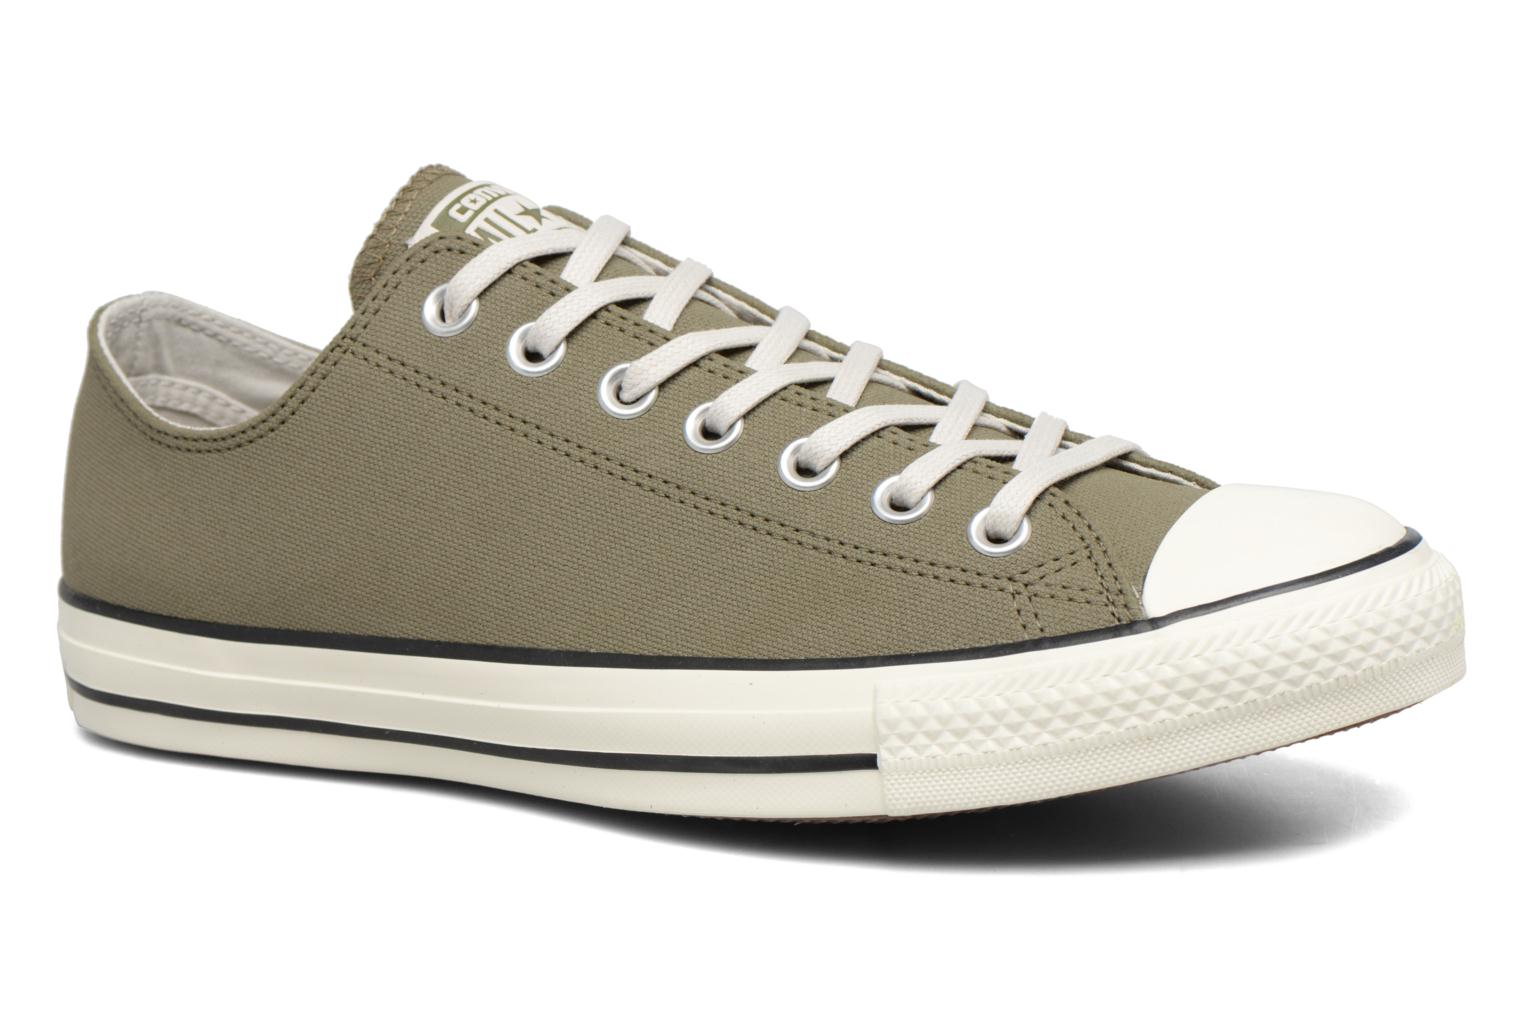 Chuck Taylor All Star Coated Leather Ox Medium Olive/Black/Egret